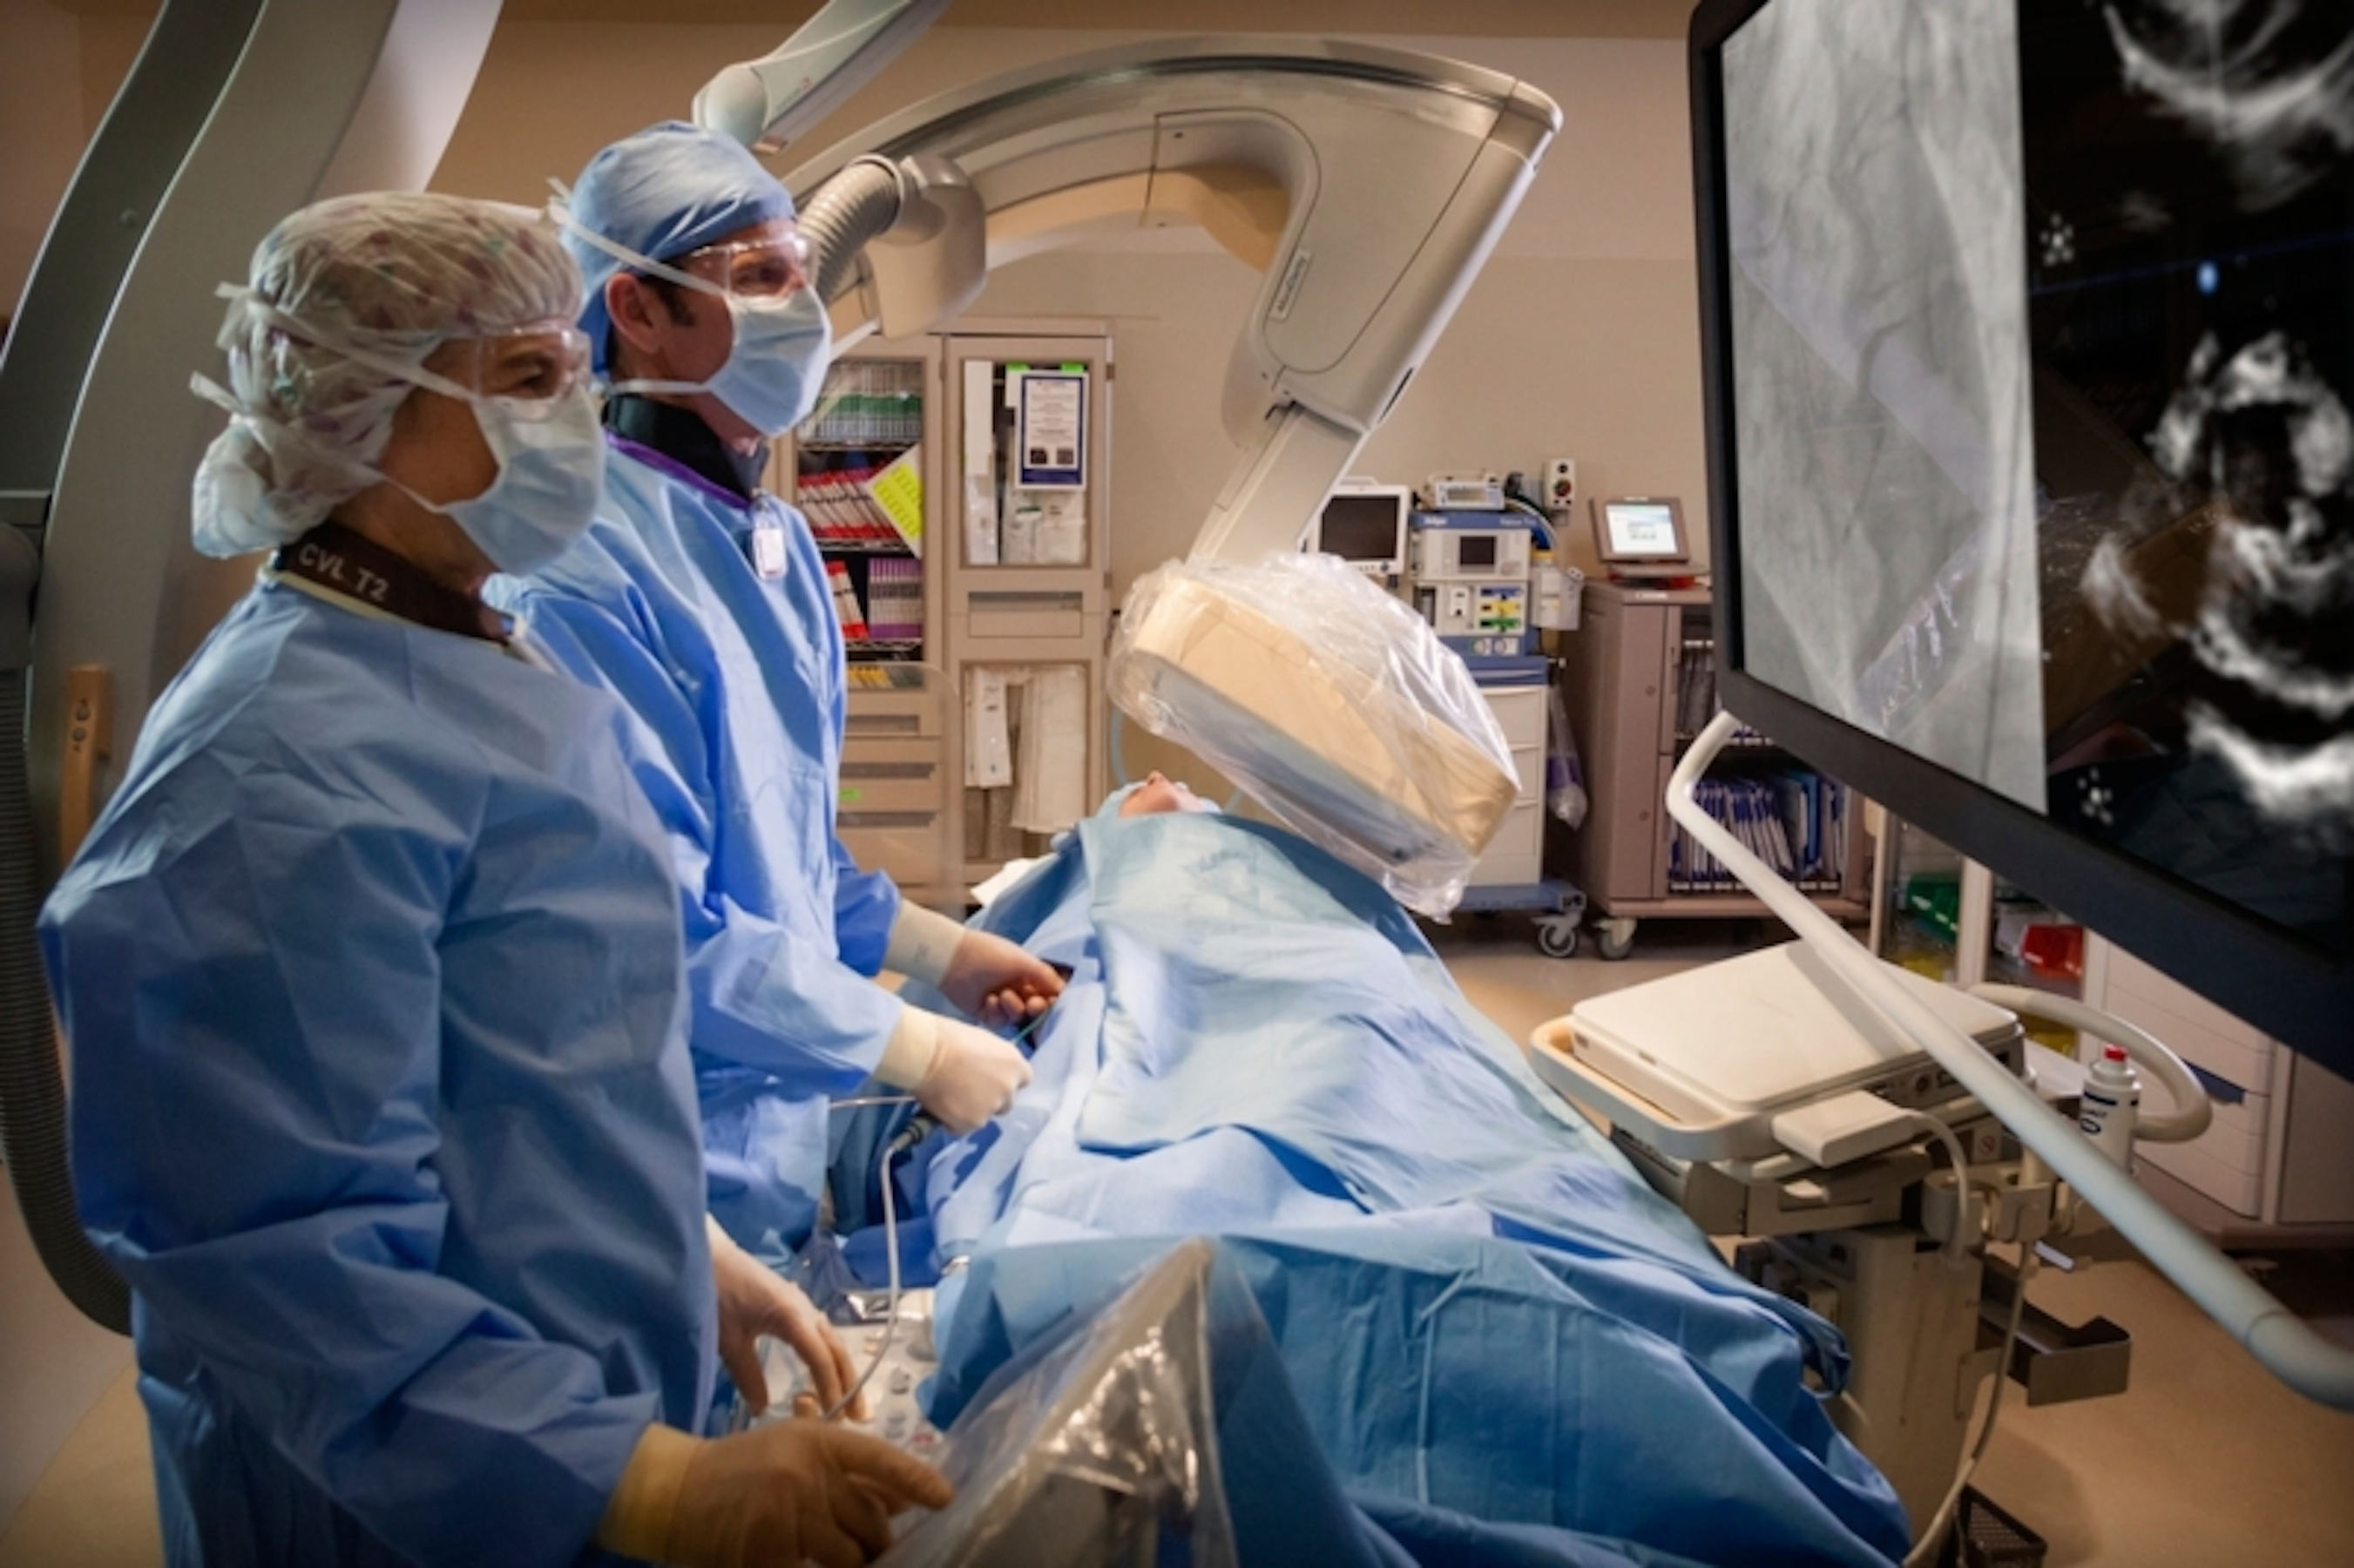 Michigan Hospital Employing Conscious Sedation For Aortic